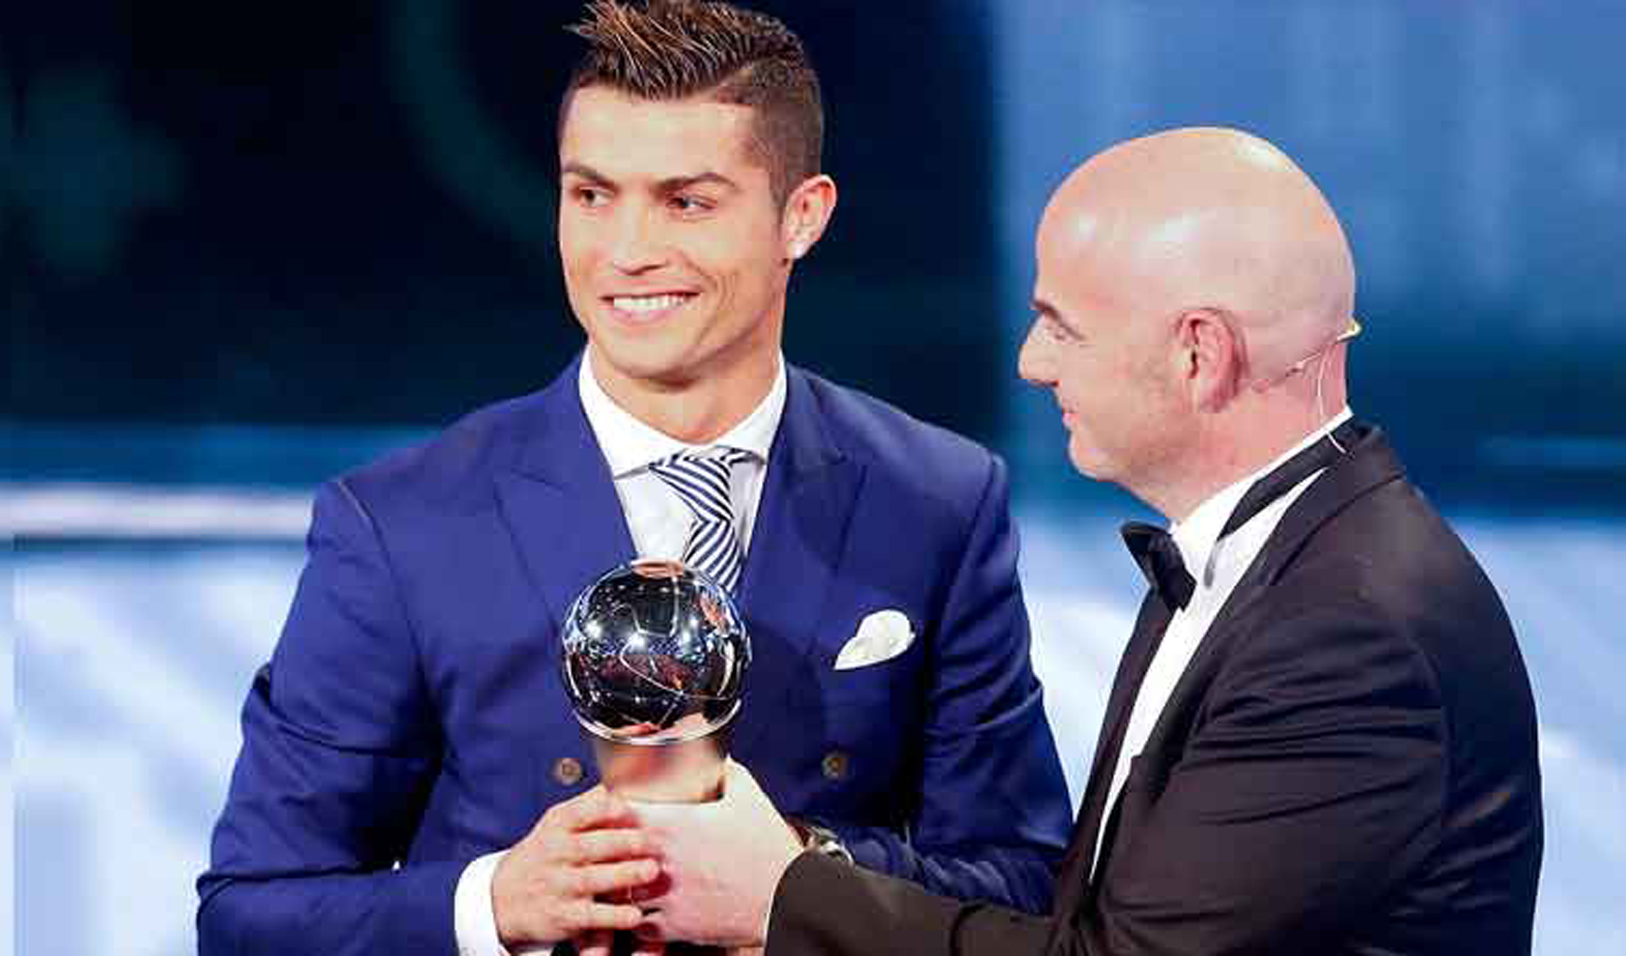 ronaldo-wins-fifa-best-player-award